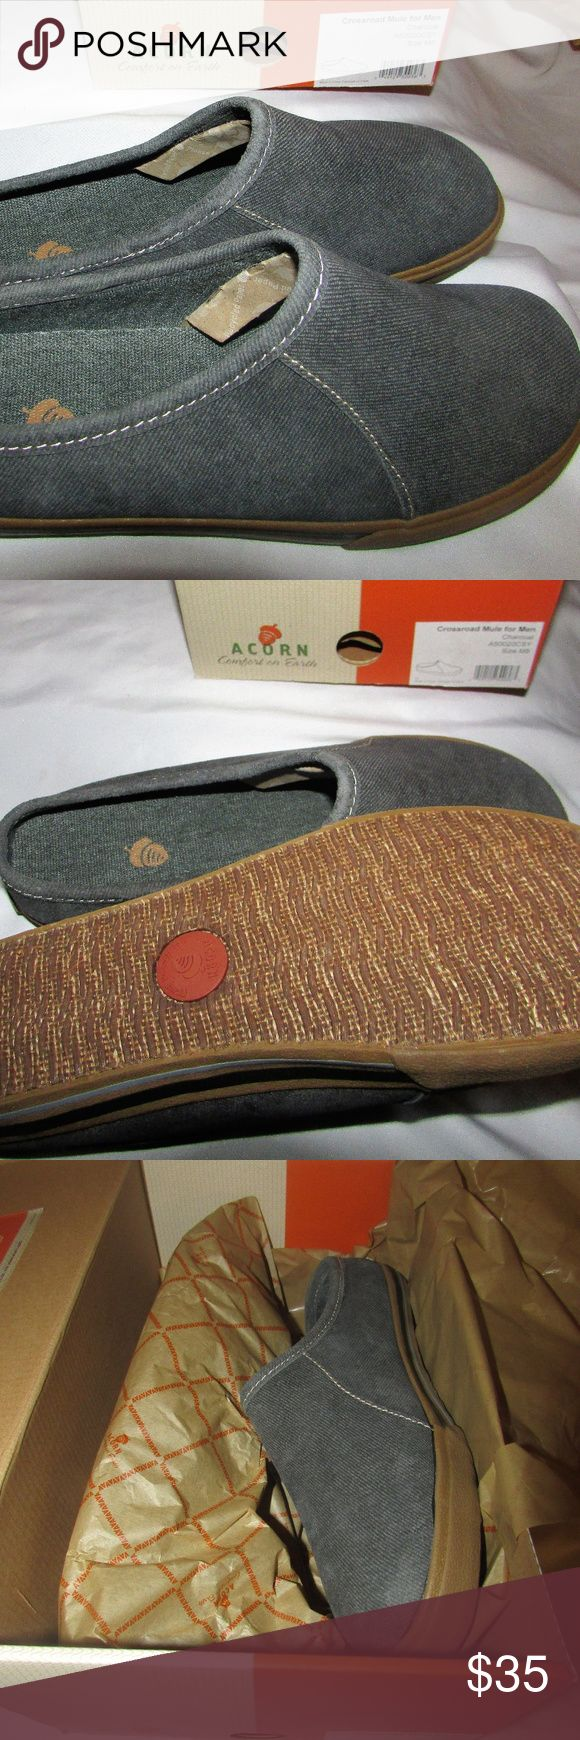 Men's Acorn Crossroad Mule for Men Charcoal Size 8 Discover why people fall in love with their Acorns.  They're made to look good and feel even better.  This easy and versatile style is crafted of the best materials to be comfortable from the inside out.  Relax and experience comfort on earth with Acorn. These shoes are new in the box. Acorn Shoes Loafers & Slip-Ons